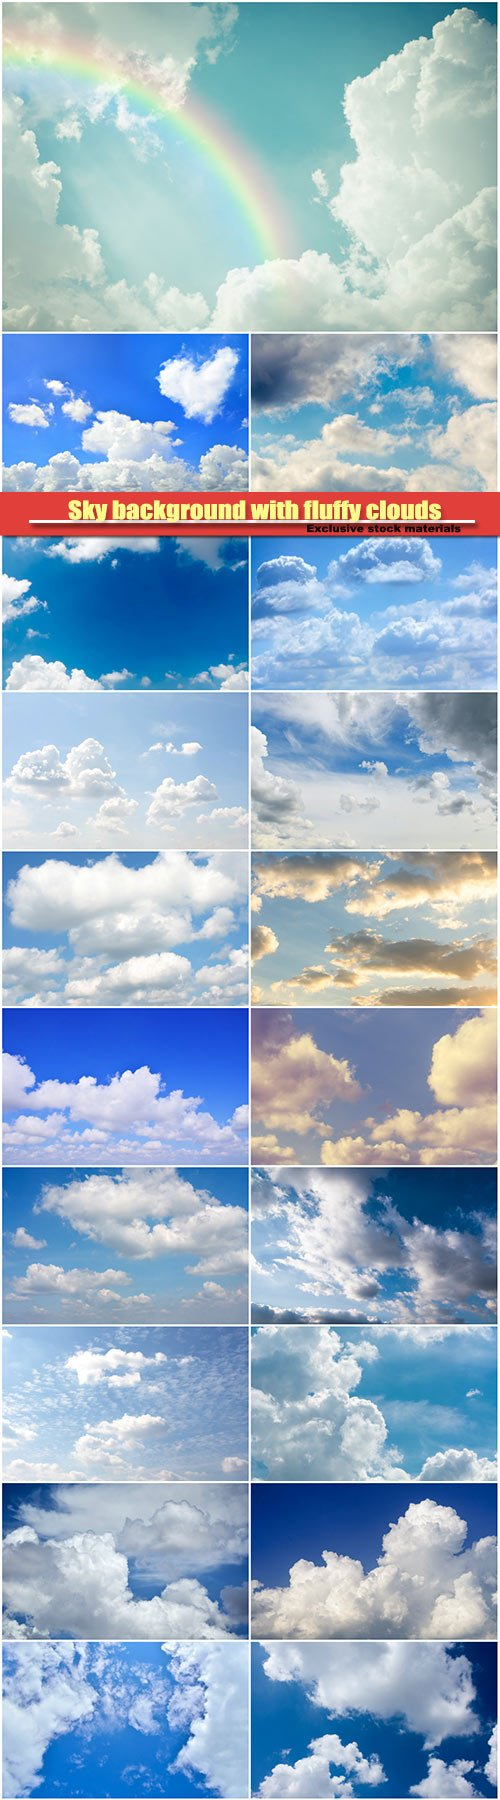 Sky background with fluffy clouds, cloudscape pattern, copy space